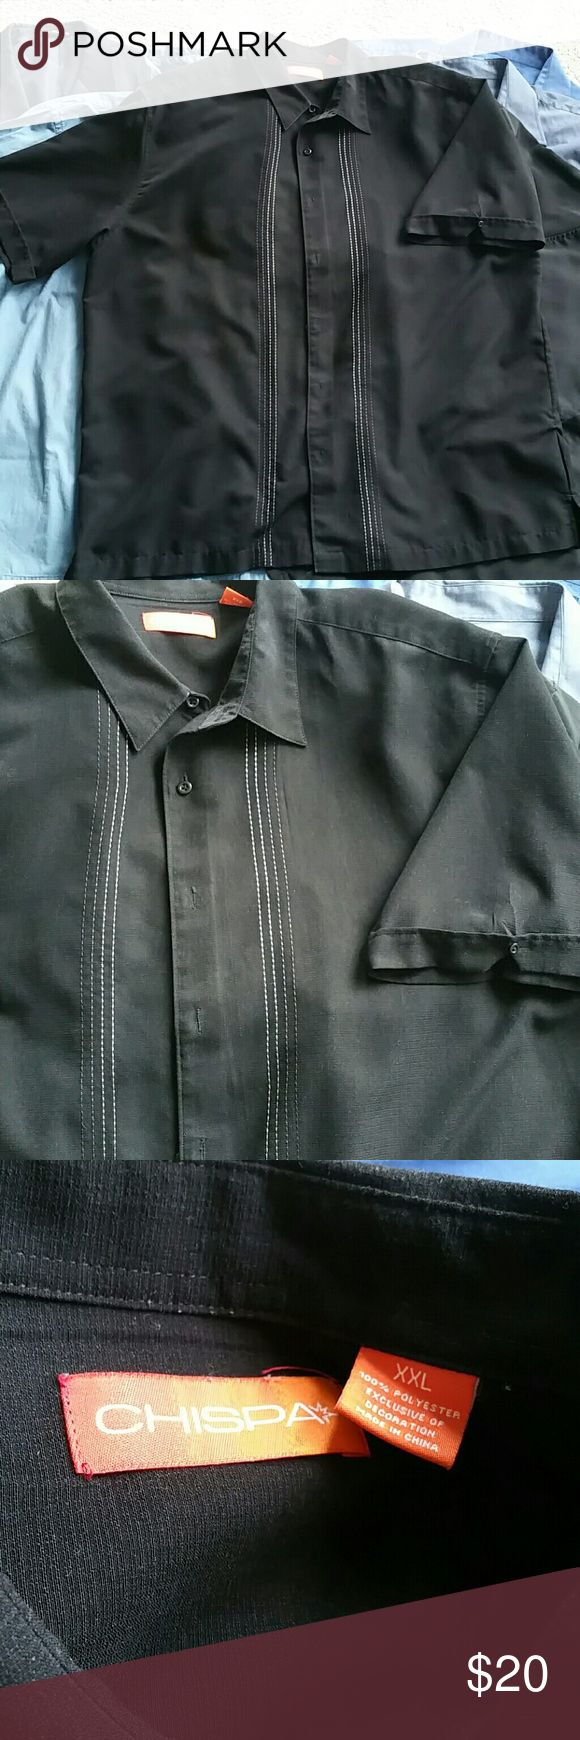 Like New!  Men's Short  Sleeved Dress Shirt Single botton on cuff of folded sleeves  4 embroidered stripes on either side of the buttons Chispa Shirts Dress Shirts